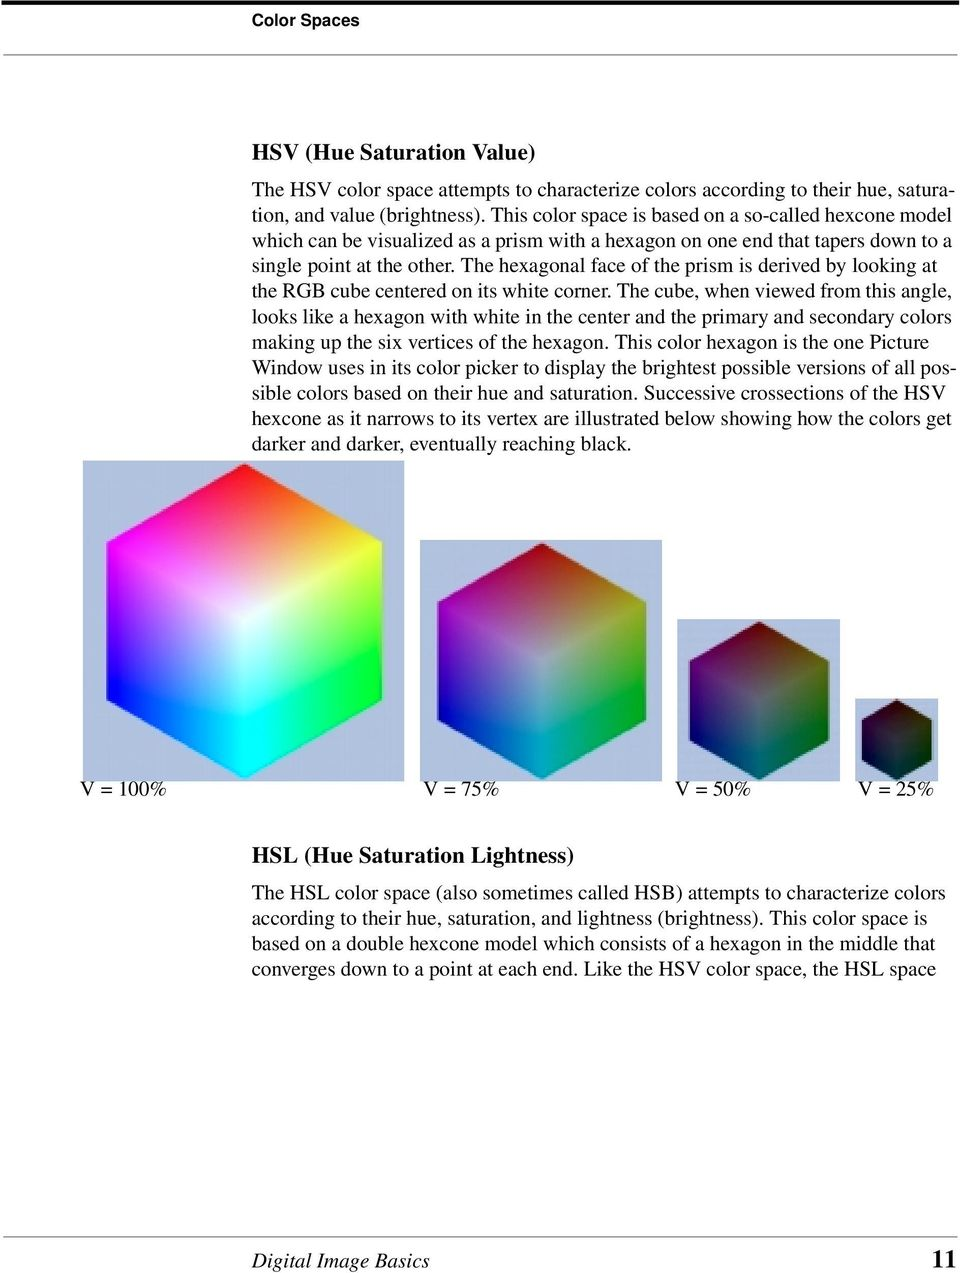 The hexagonal face of the prism is derived by looking at the RGB cube centered on its white corner.